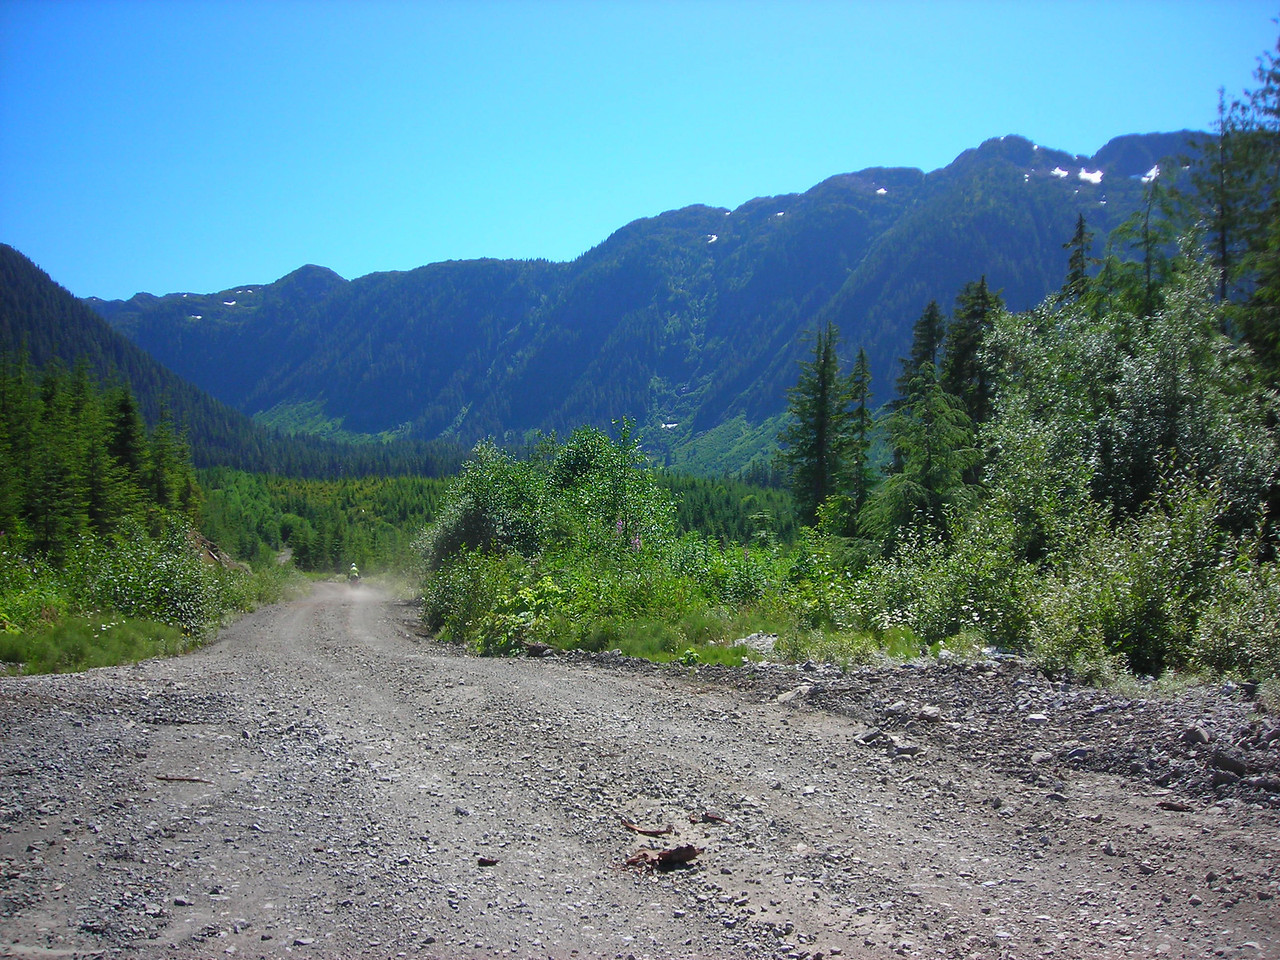 Dennis heads into a culdesac in the mountains of the Tahsish-Kwois wilderness.